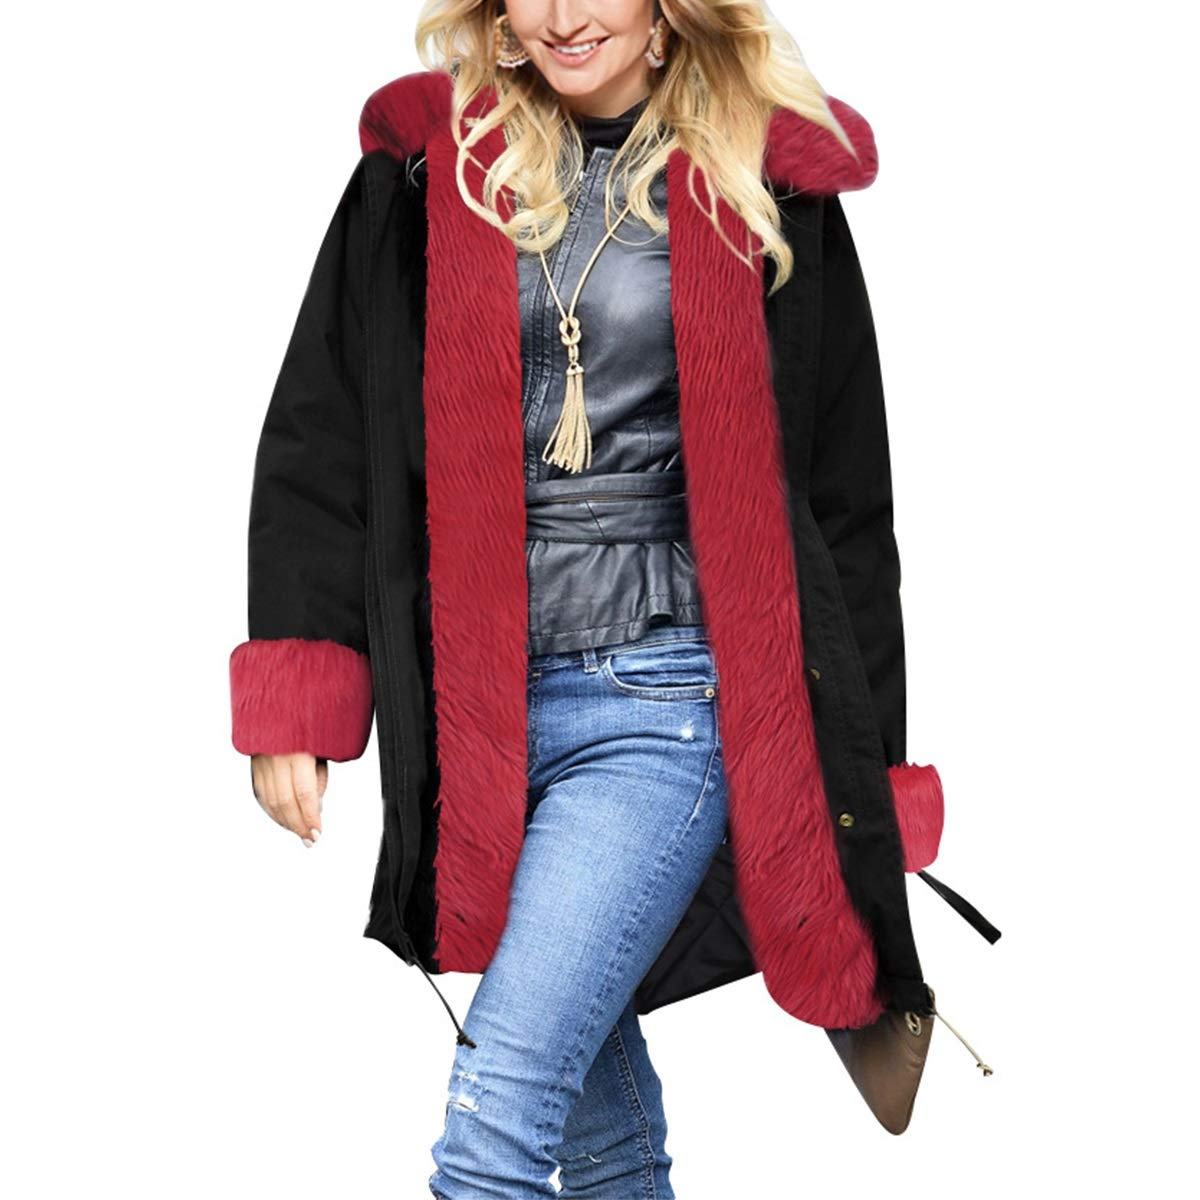 Black2 Womens Winter Warm Thicken Long Sleeve Faux Fur Collar Hooded Parka Jacket Coat